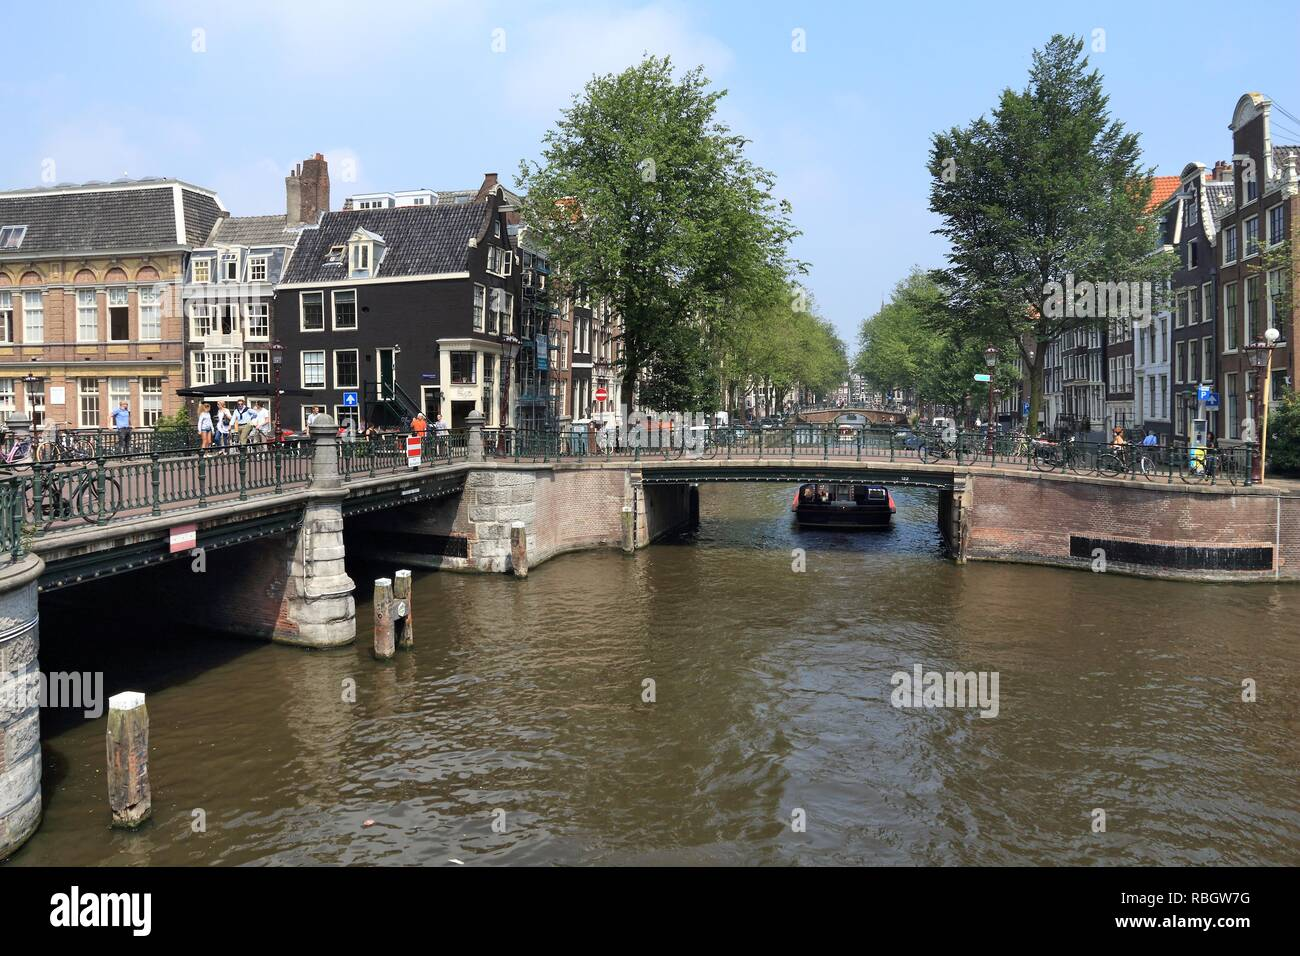 AMSTERDAM, NETHERLANDS - JULY 7, 2017: People visit Leidsegracht and Prinsengracht canal crossing in Amsterdam, Netherlands. Amsterdam is the capital  - Stock Image